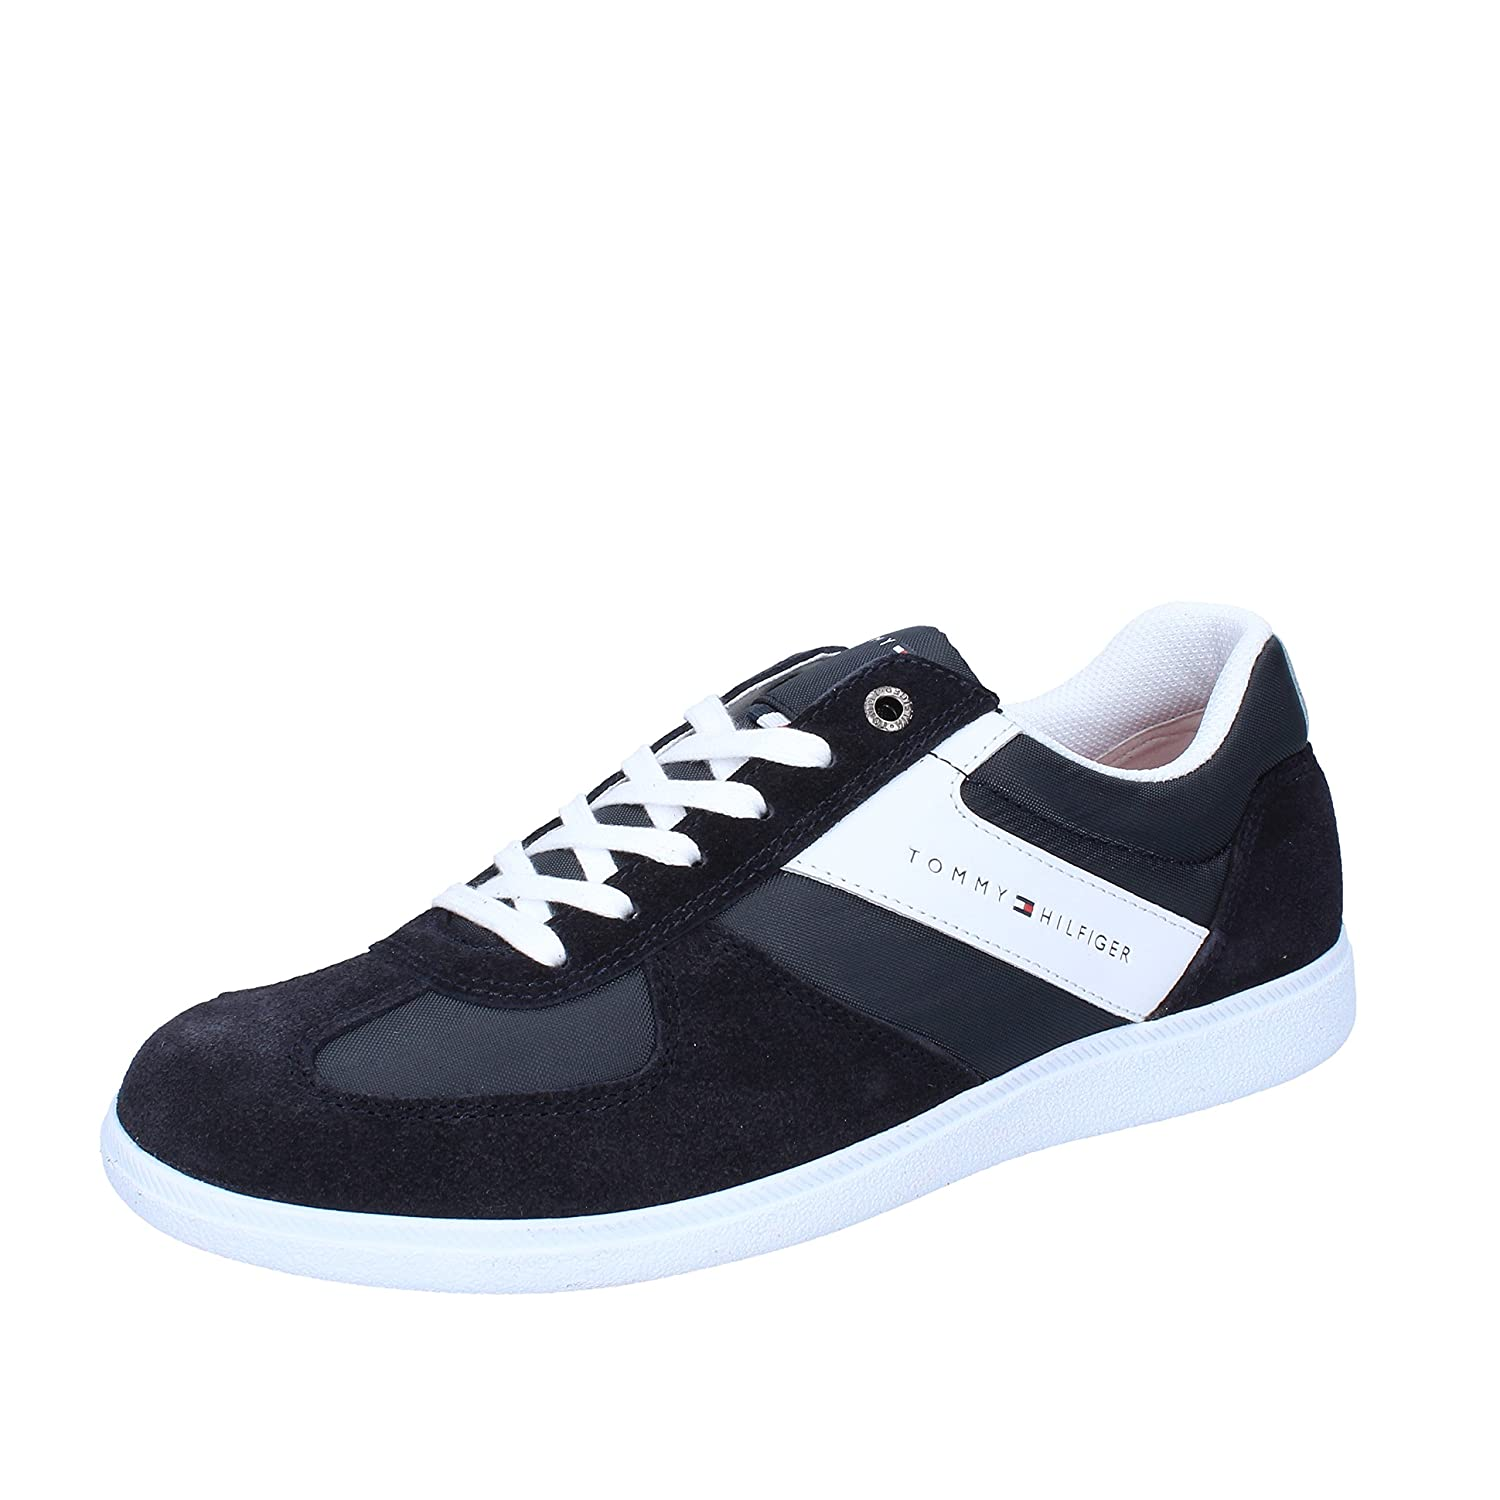 eaca867595eaf Tommy Hilfiger Zapatos D2285ANNY 1C4 Hilfiger Flag Midnight T-40   Amazon.co.uk  Shoes   Bags